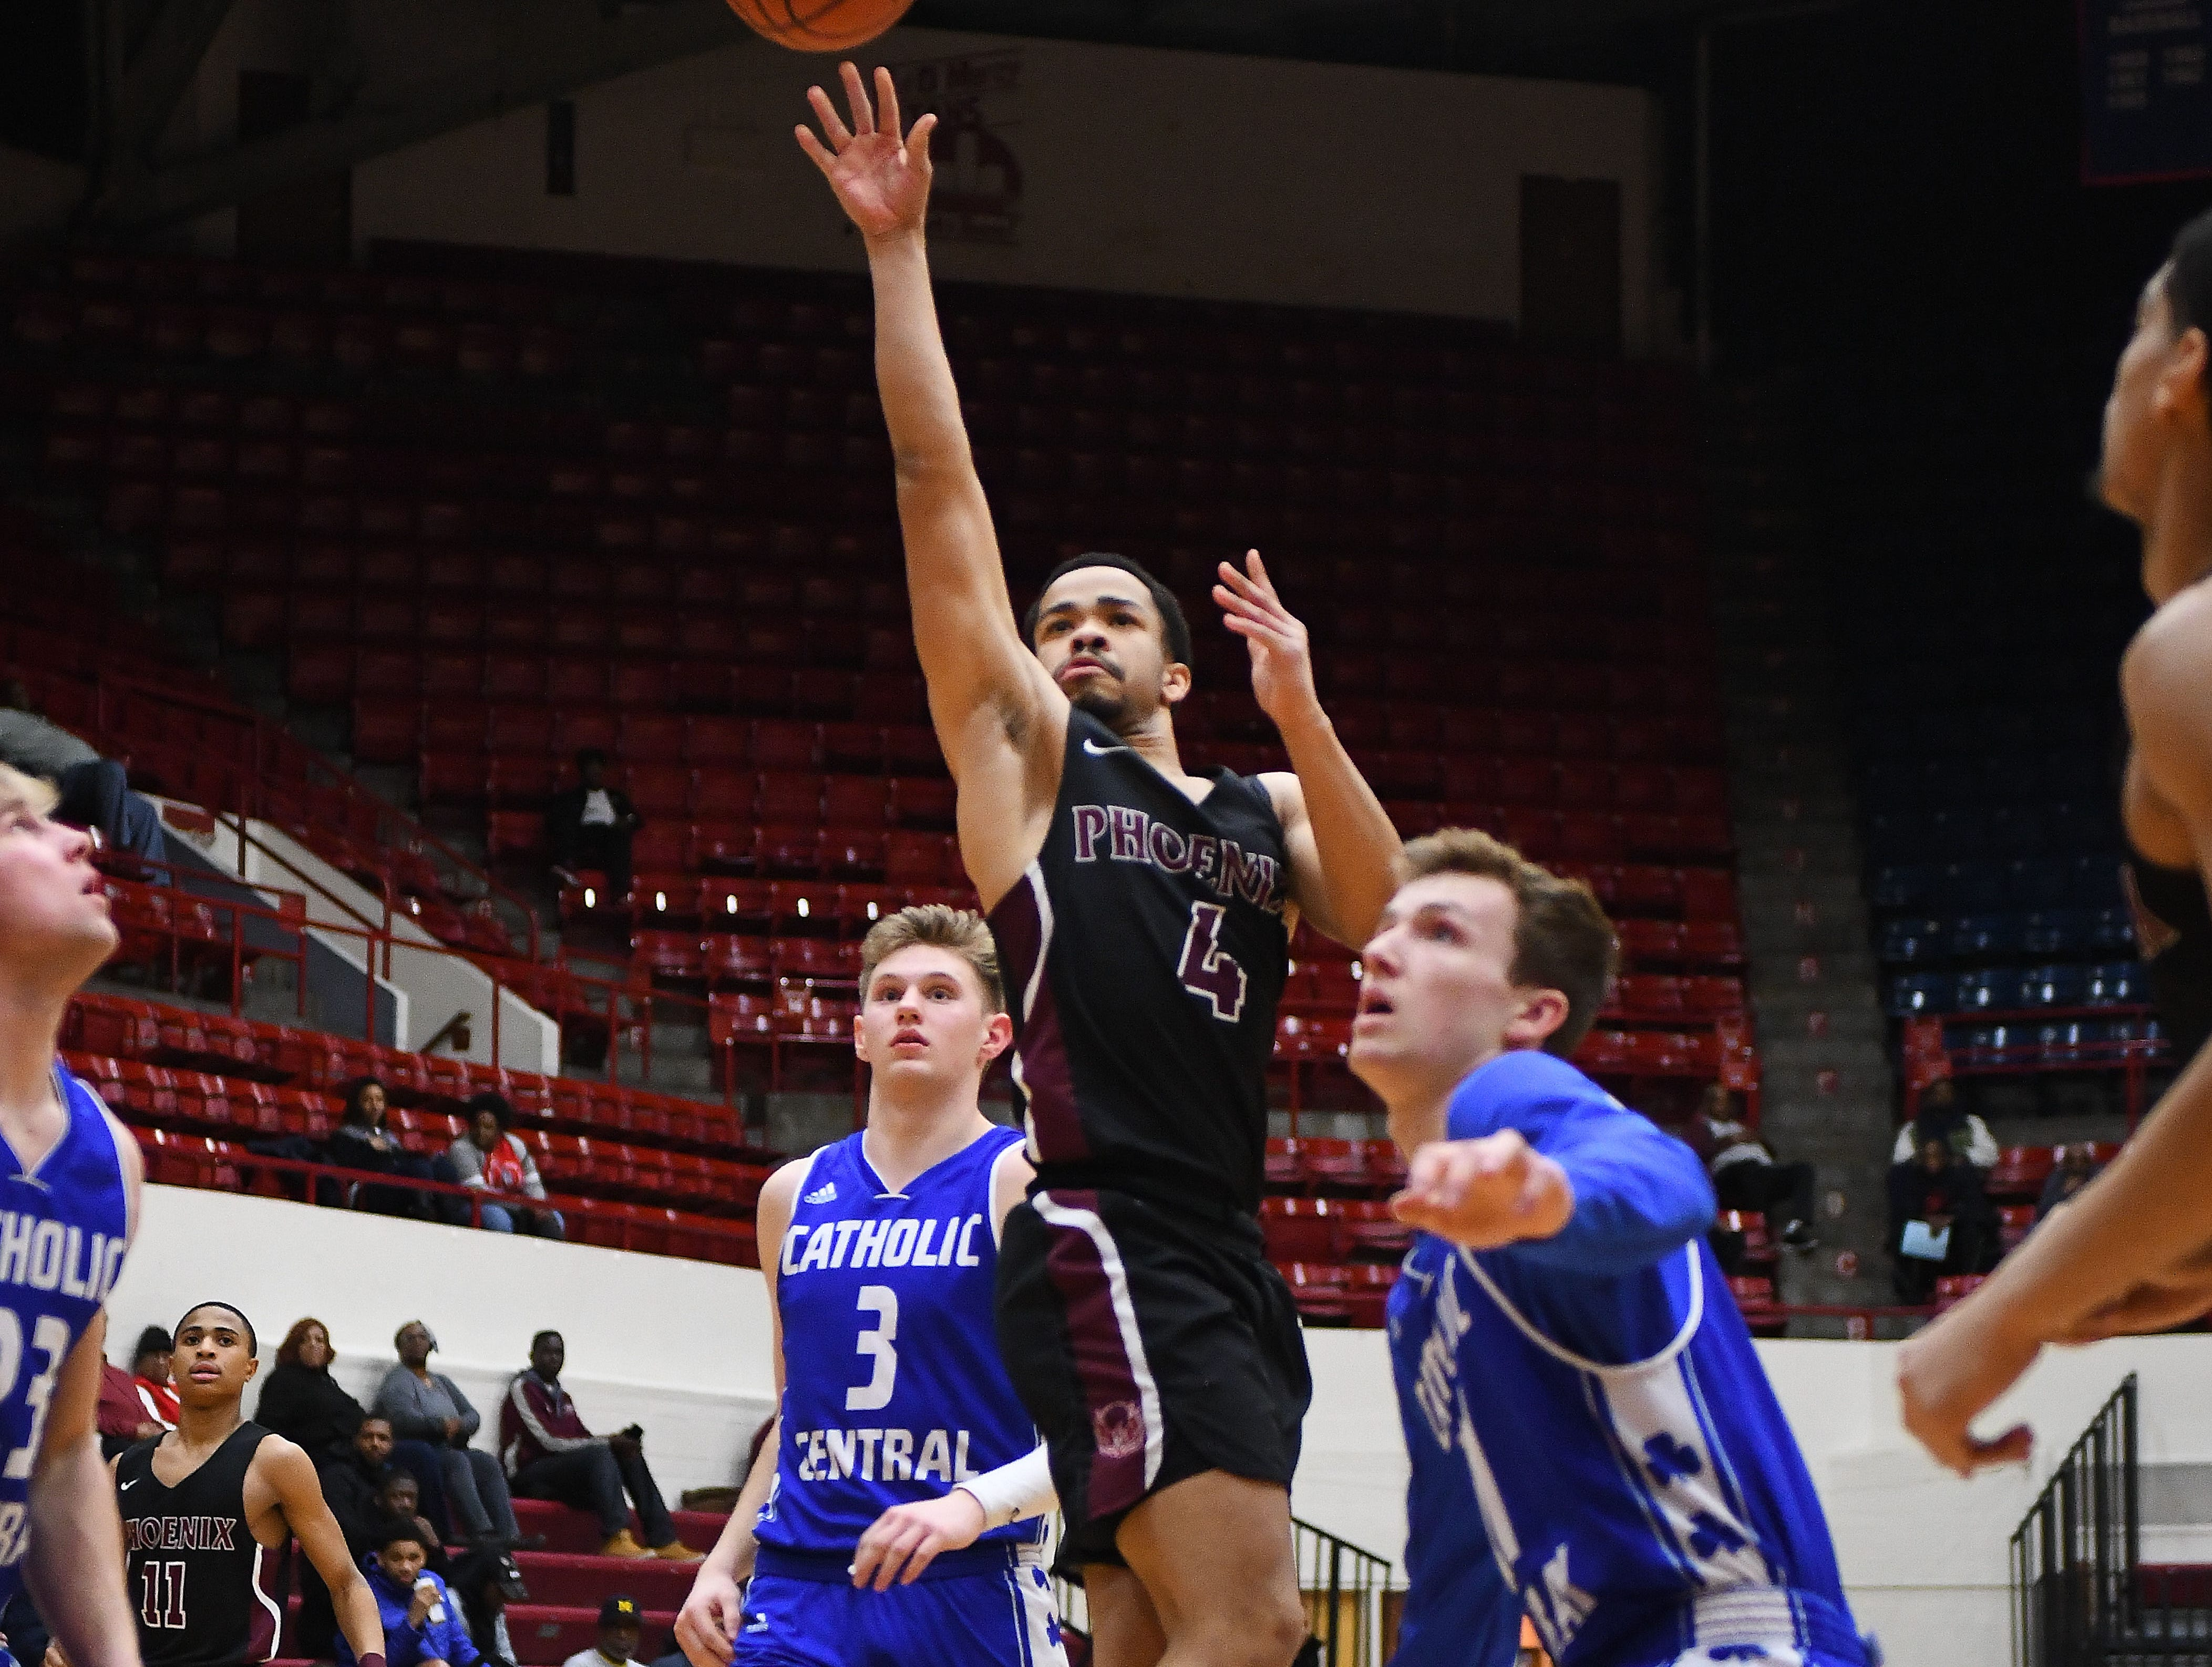 Renaissance's Angelo Robertson splits the defense of Catholic Central's Davis Lukomski and Justin Rukat and puts up a shot in the first half of the Operation Friendship consolation game between Renaissance and Catholic Central at Calihan Hall on the campus of the University of Detroit Mercy in Detroit, Michigan on February 22, 2019.